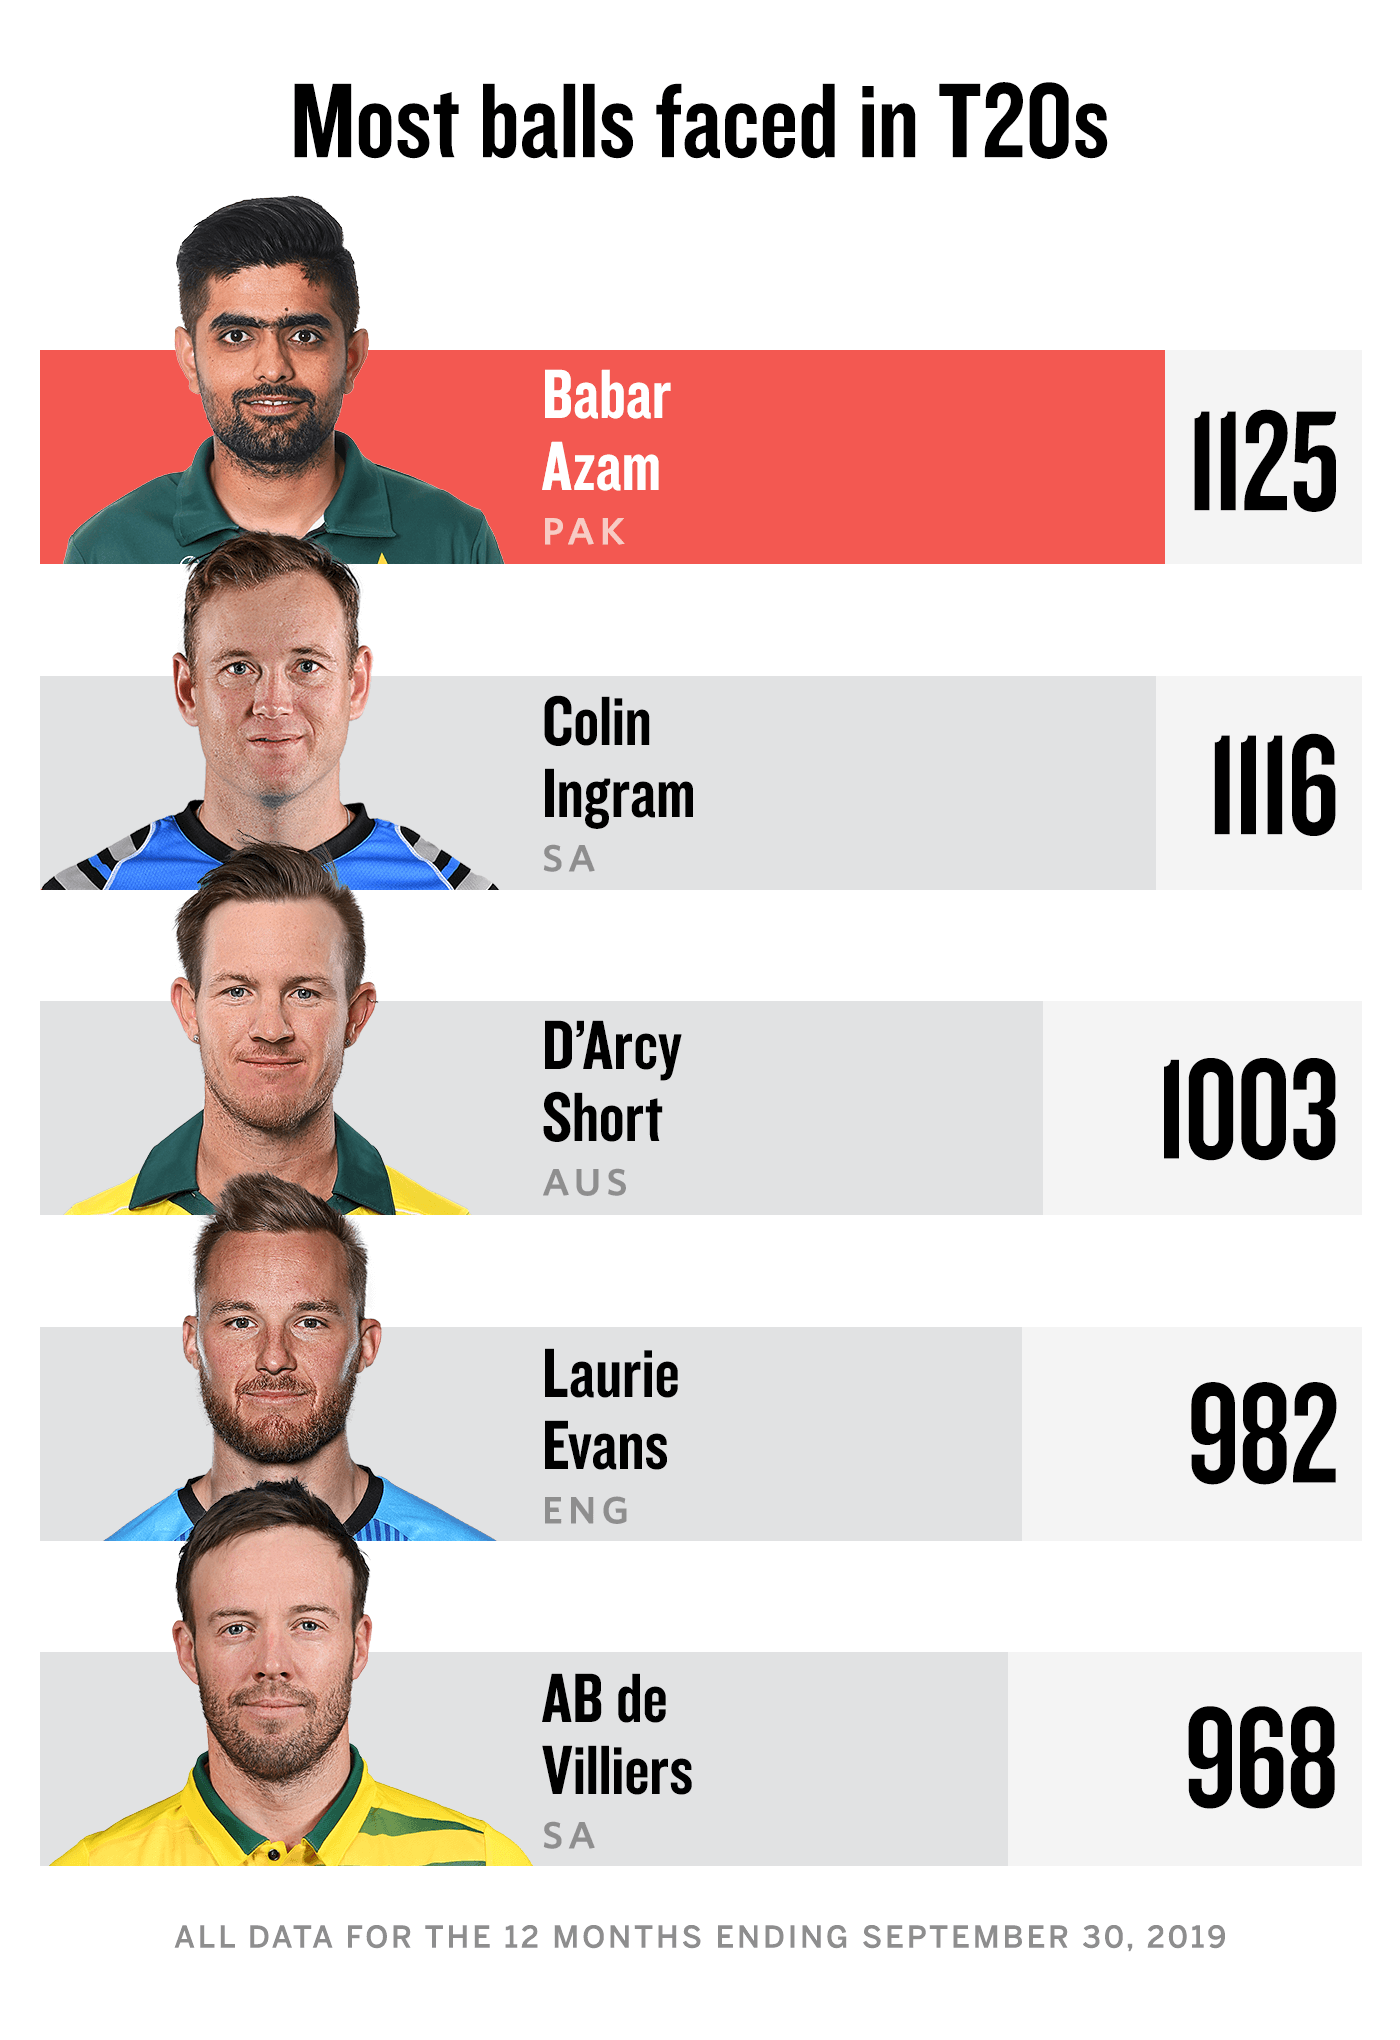 Most balls faced in T20